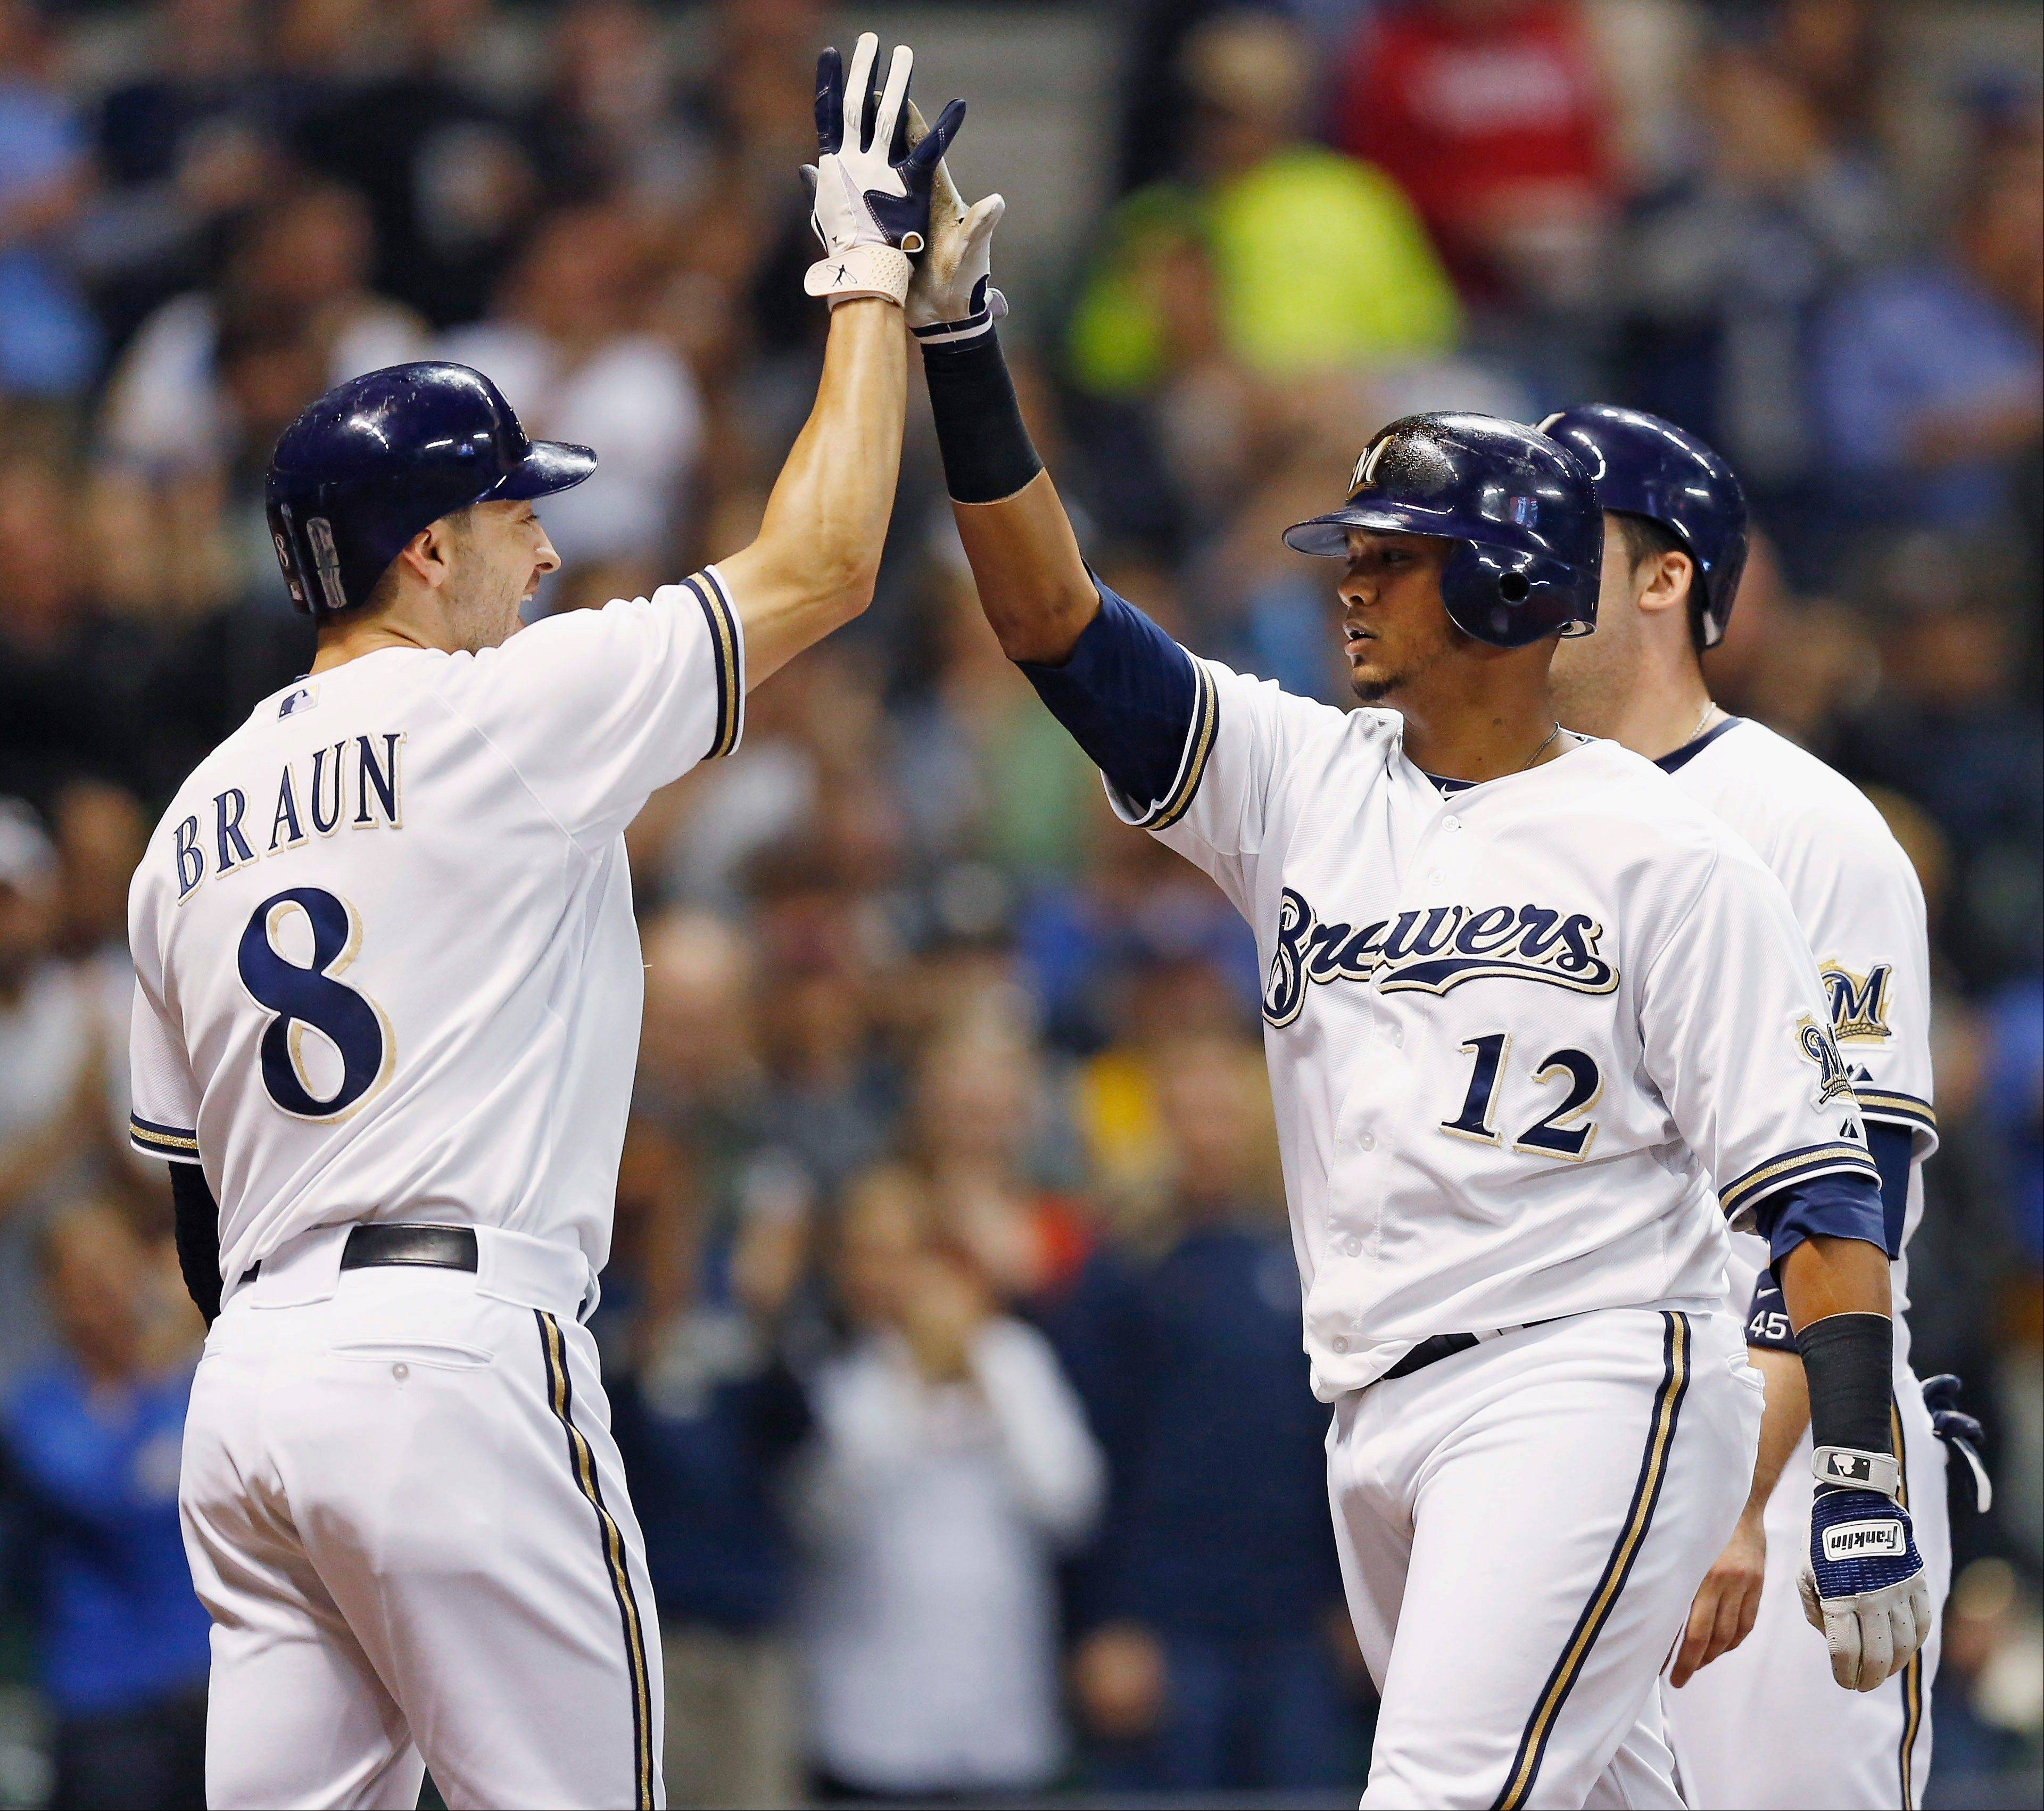 The Brewers' Ryan Braun gives a high-five to Martin Maldonado after Maldonado hit a grand slam off San Diego's Anthony Bass during the third inning Tuesday in Milwaukee.